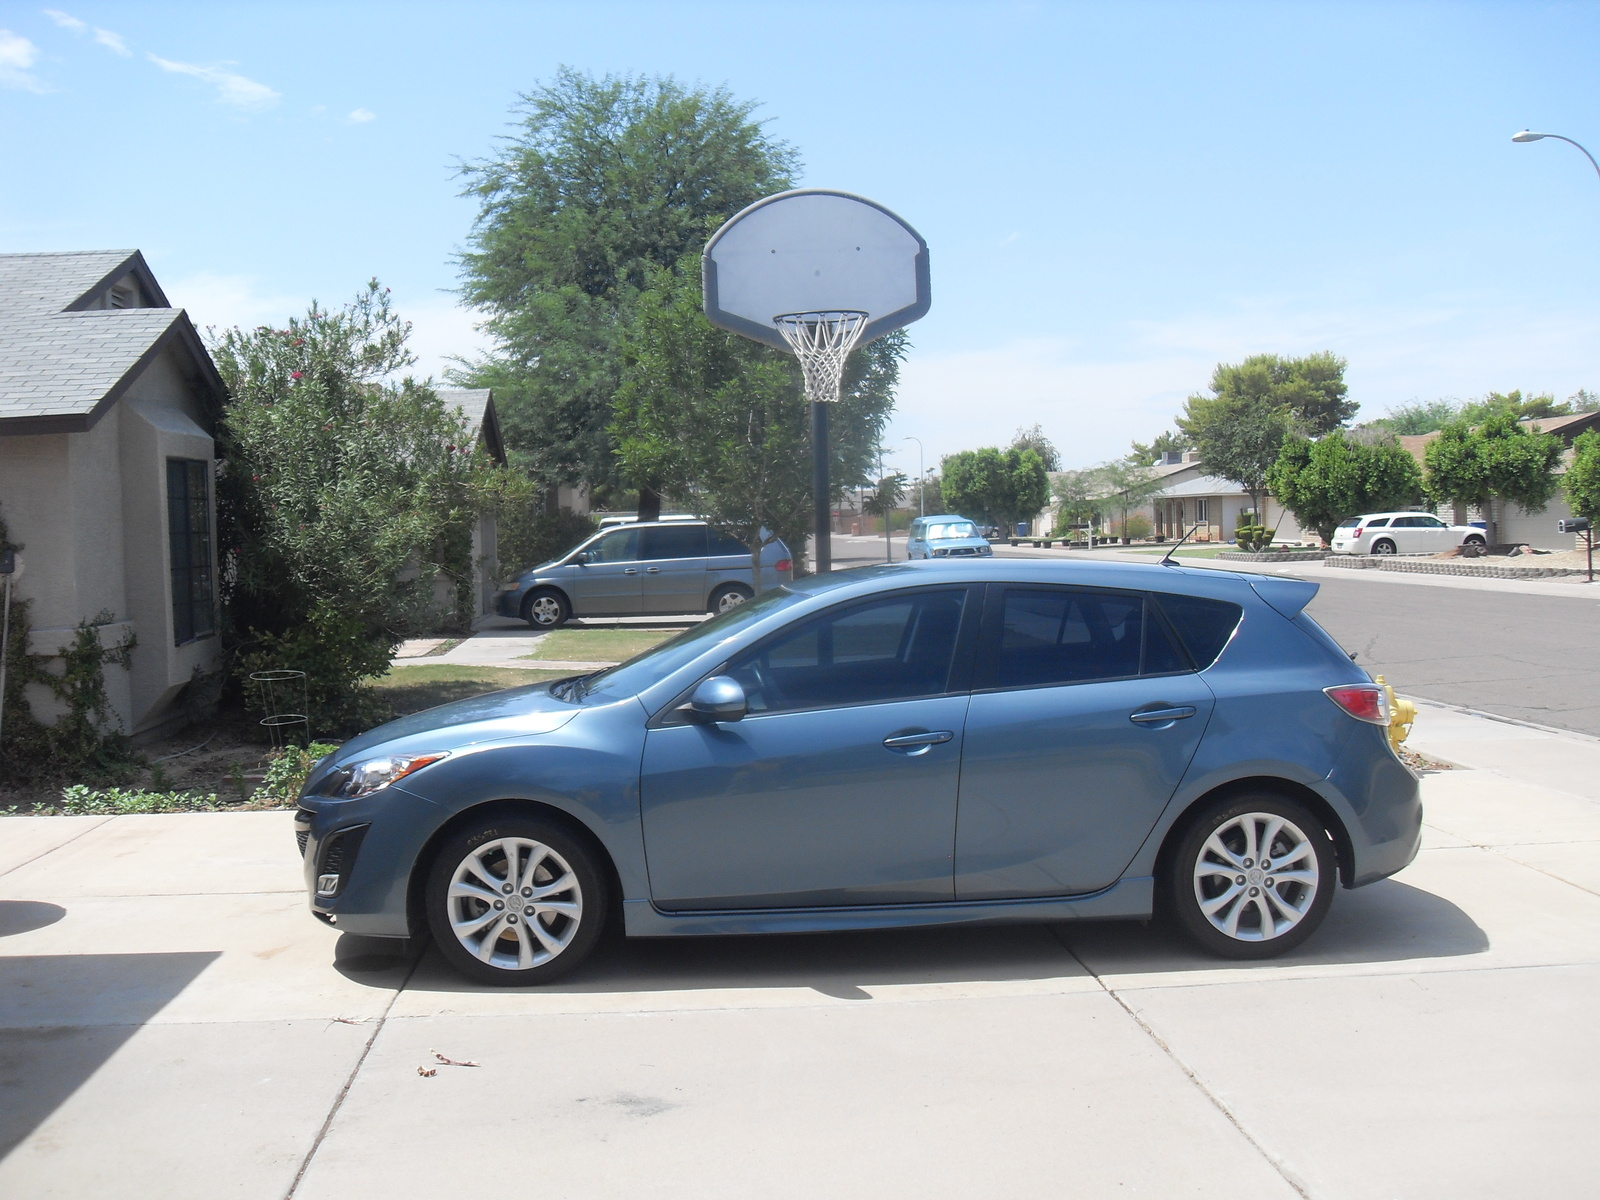 Mazda MAZDA3 Questions - What can I do to assure potential buyers ...